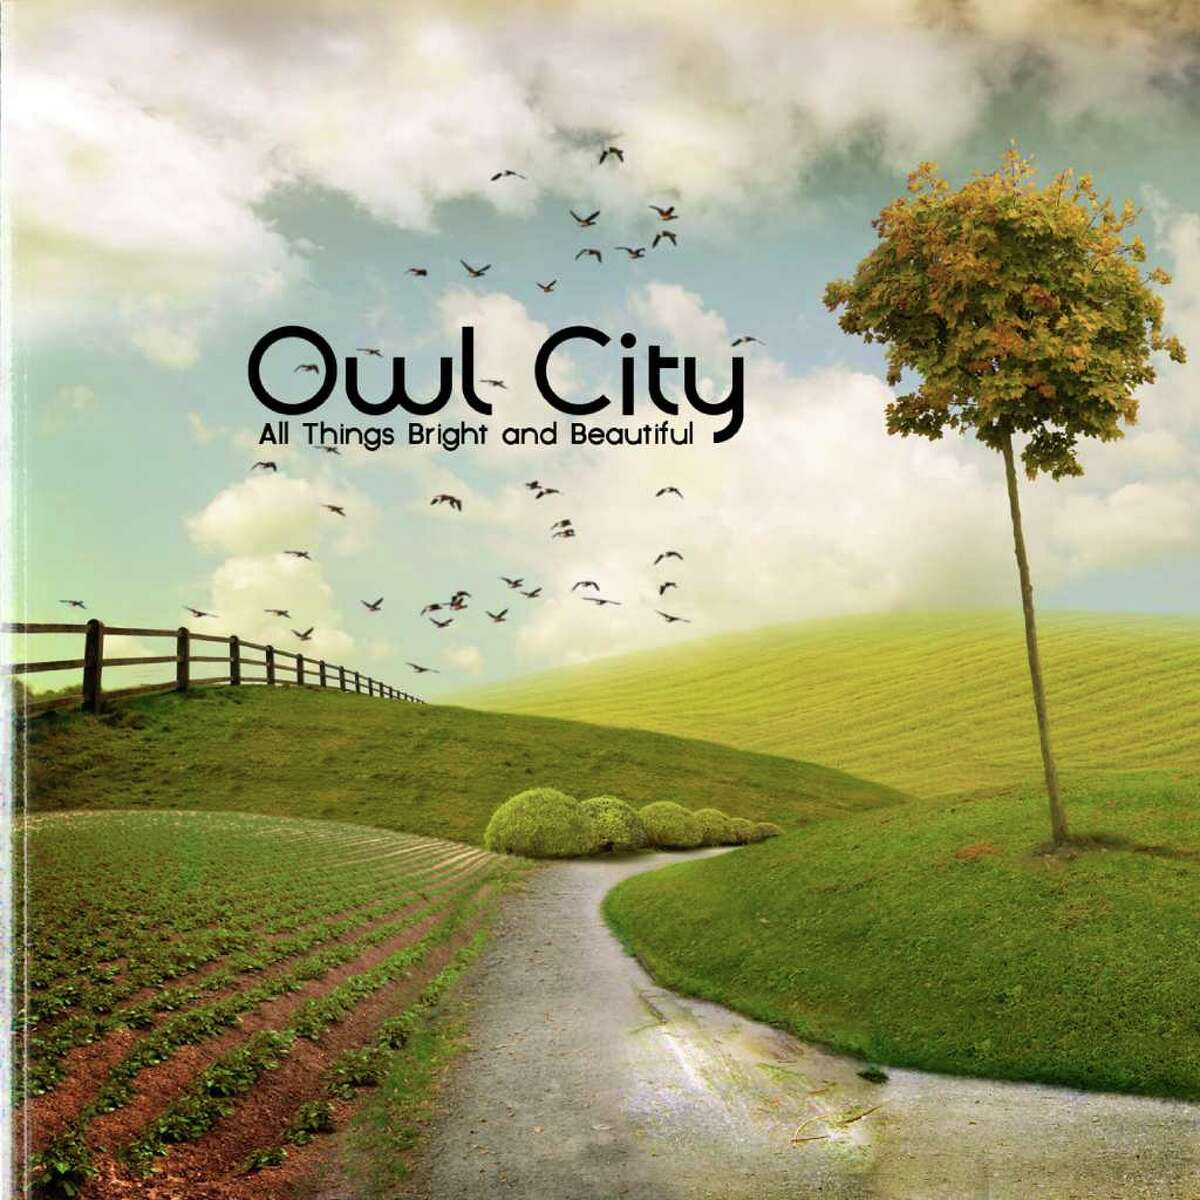 Contemporary Christian band Owl City's latest CD is titled